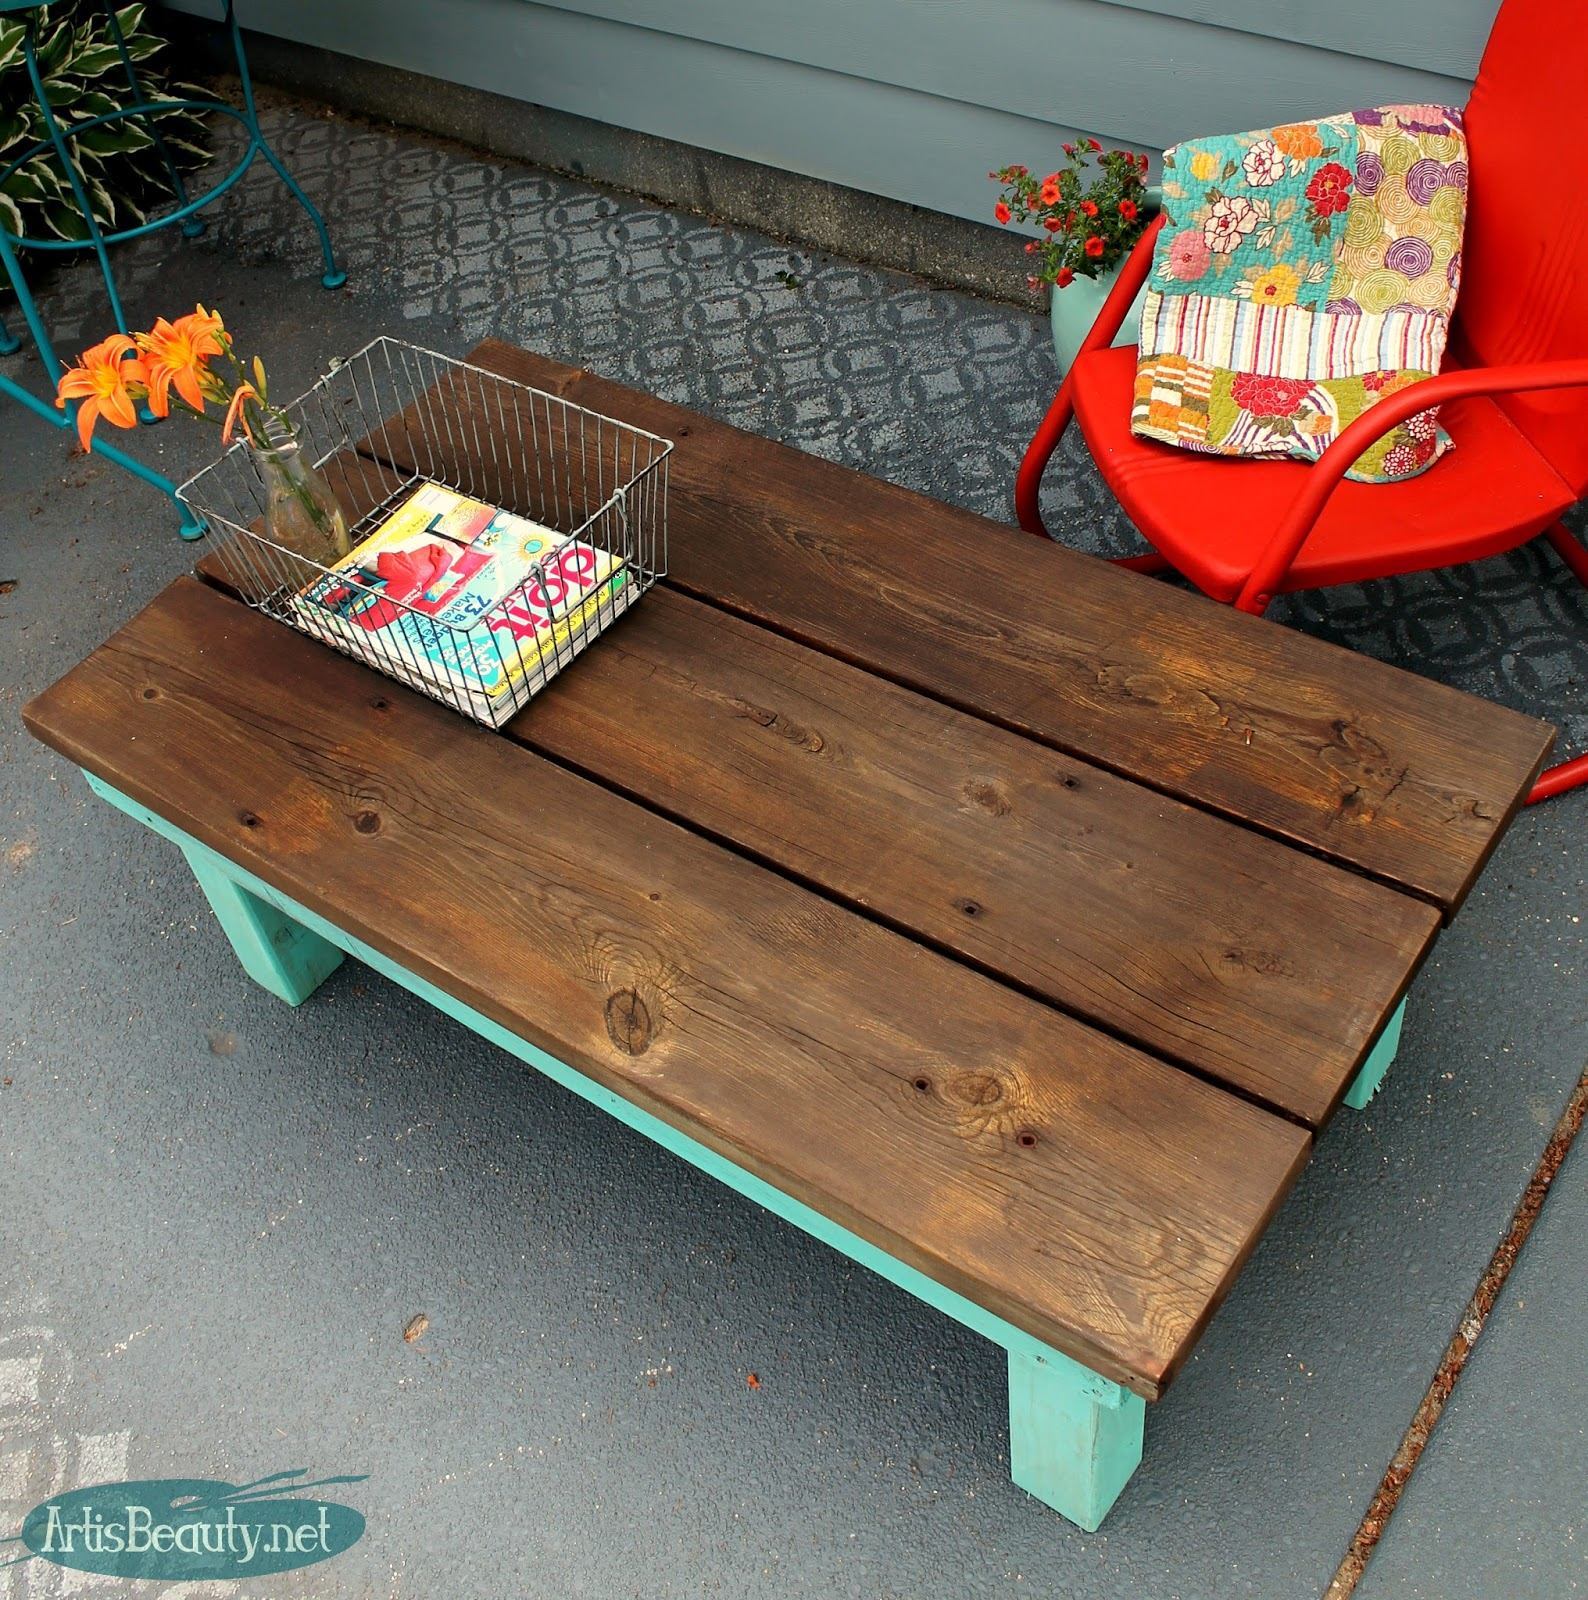 Art Is Beauty Diy Build It Yourself Vintage Farmhouse Style Coffee Table From Rescued Lumber